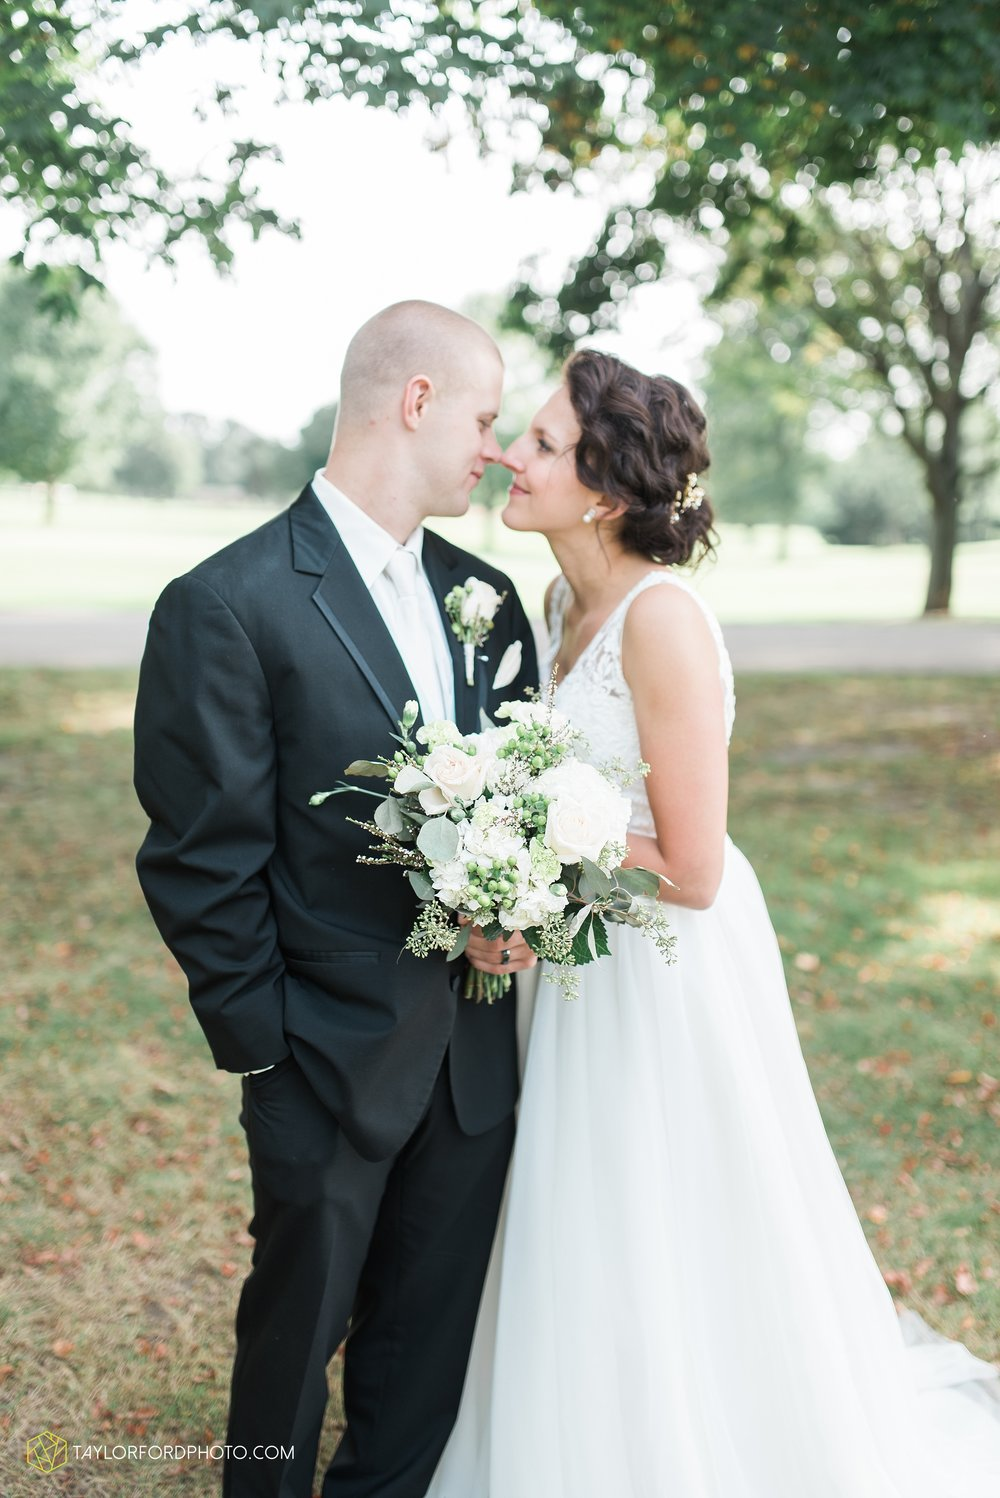 charlotte-battlecreek-michigan-wedding-photographer-Taylor-Ford-Photography-Ohio-Indiana_2933.jpg